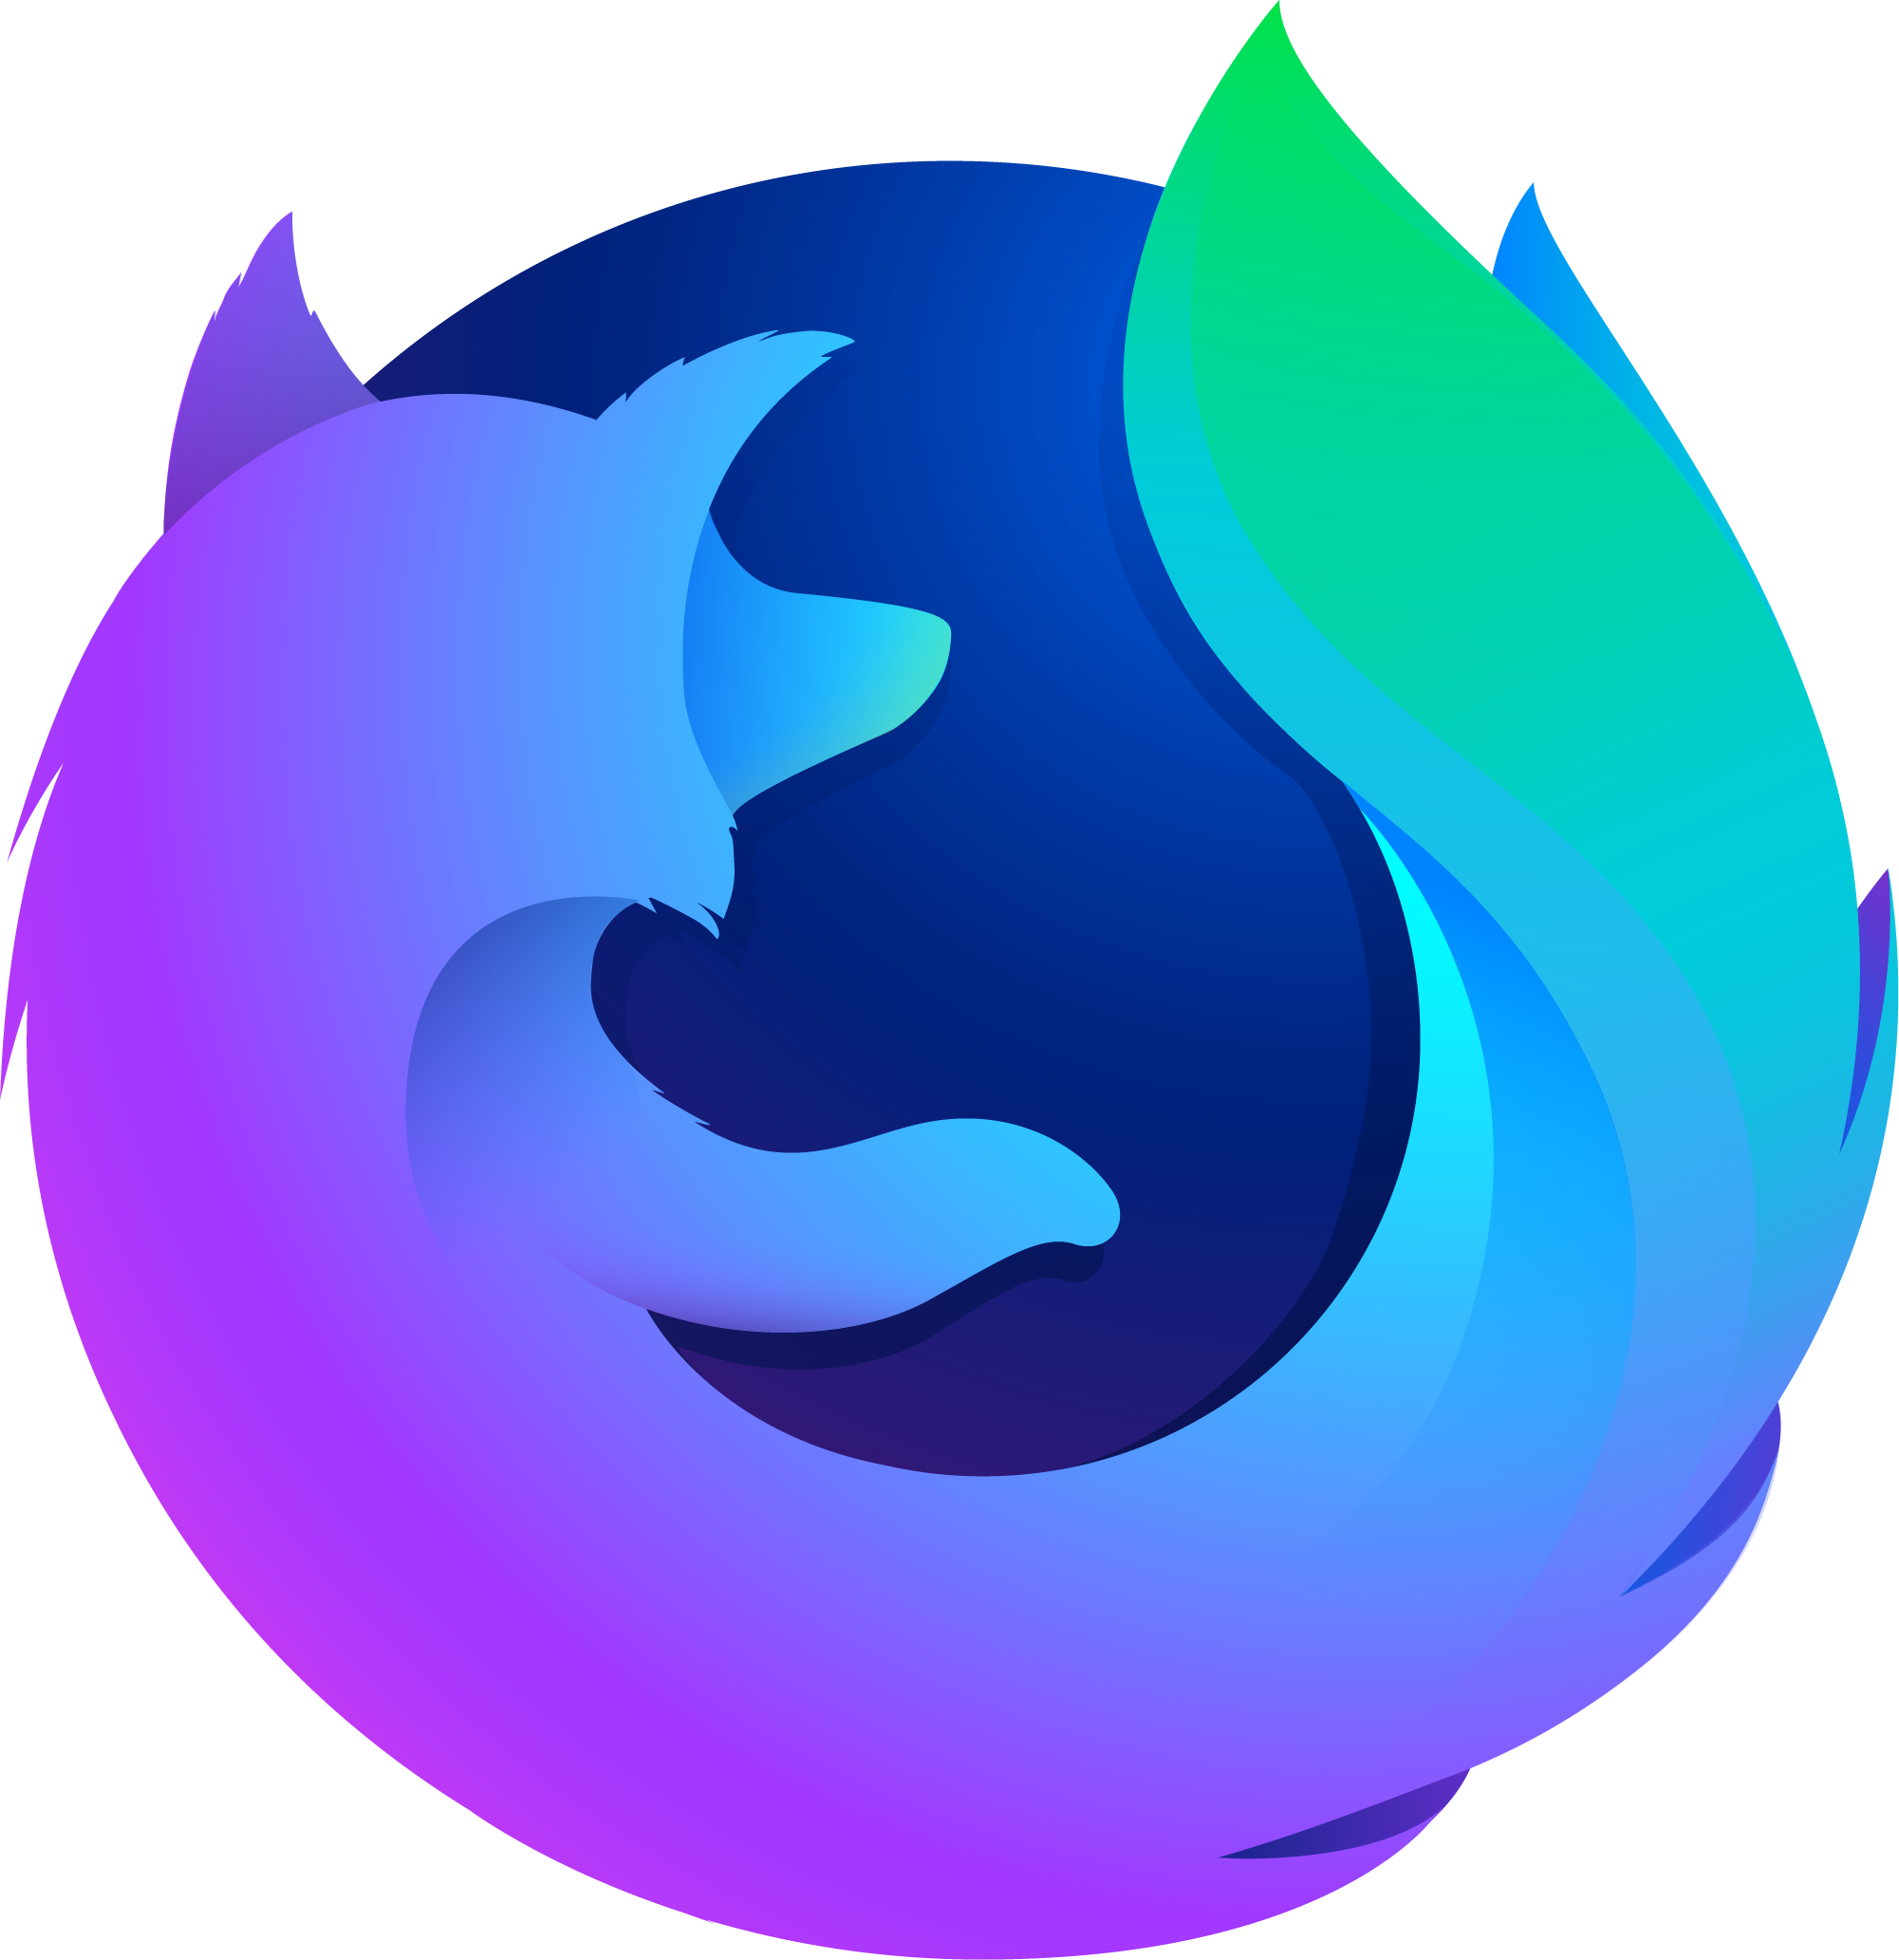 Firefox drawing sad. File nightly logo png